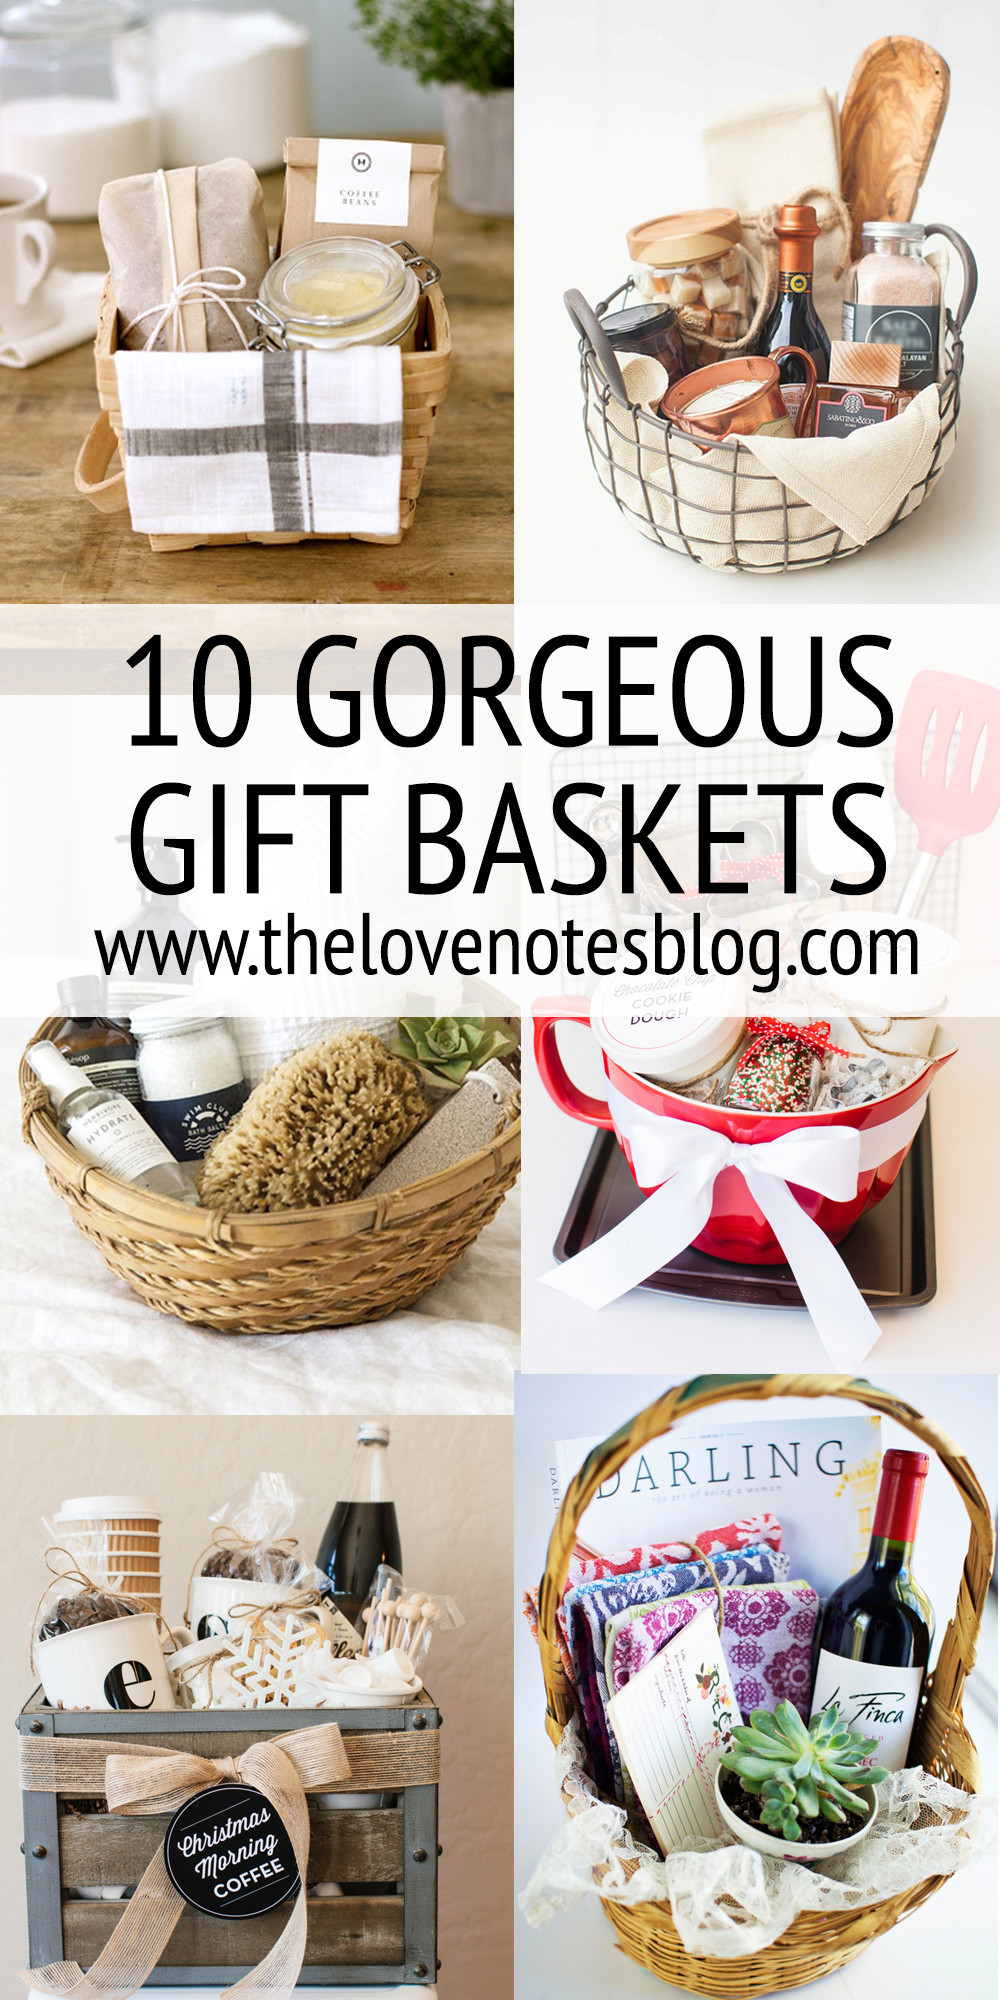 Best ideas about Gift Basket Ideas . Save or Pin Mason Jar Gift Ideas – The Love Notes Blog Now.